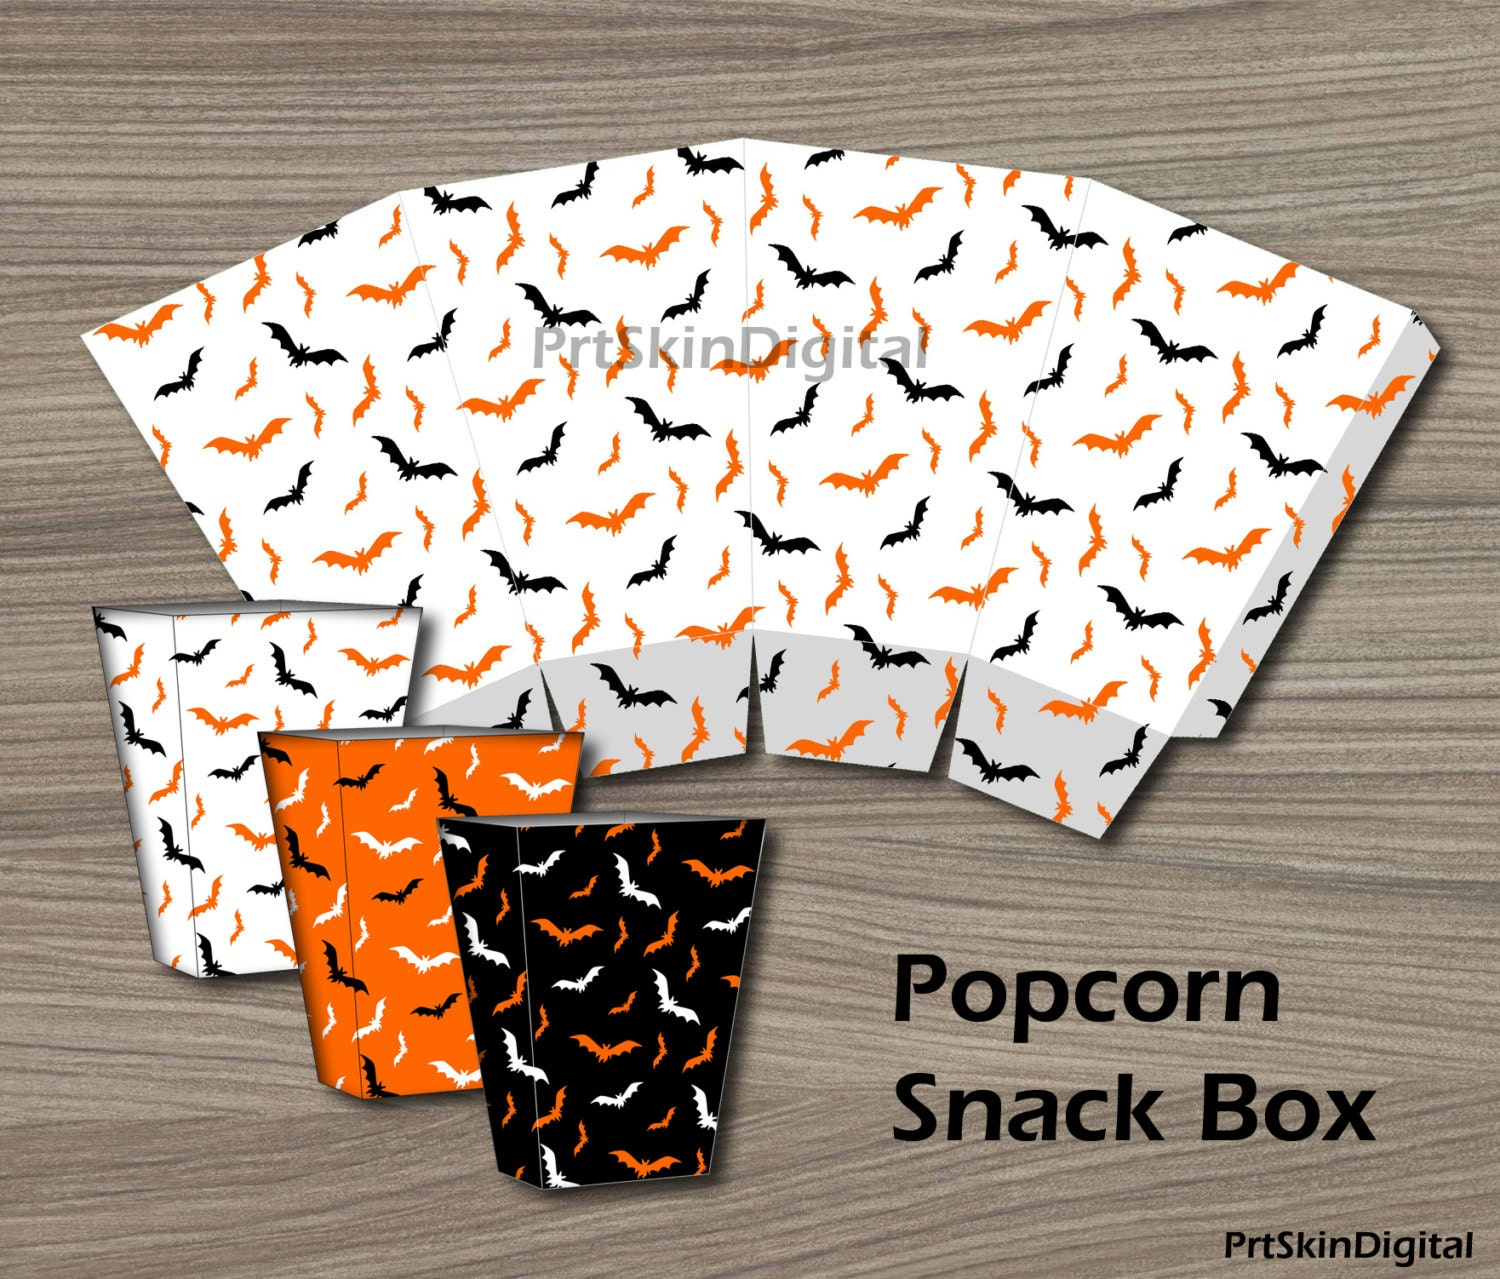 It's just a picture of Peaceful Printable Popcorn Box